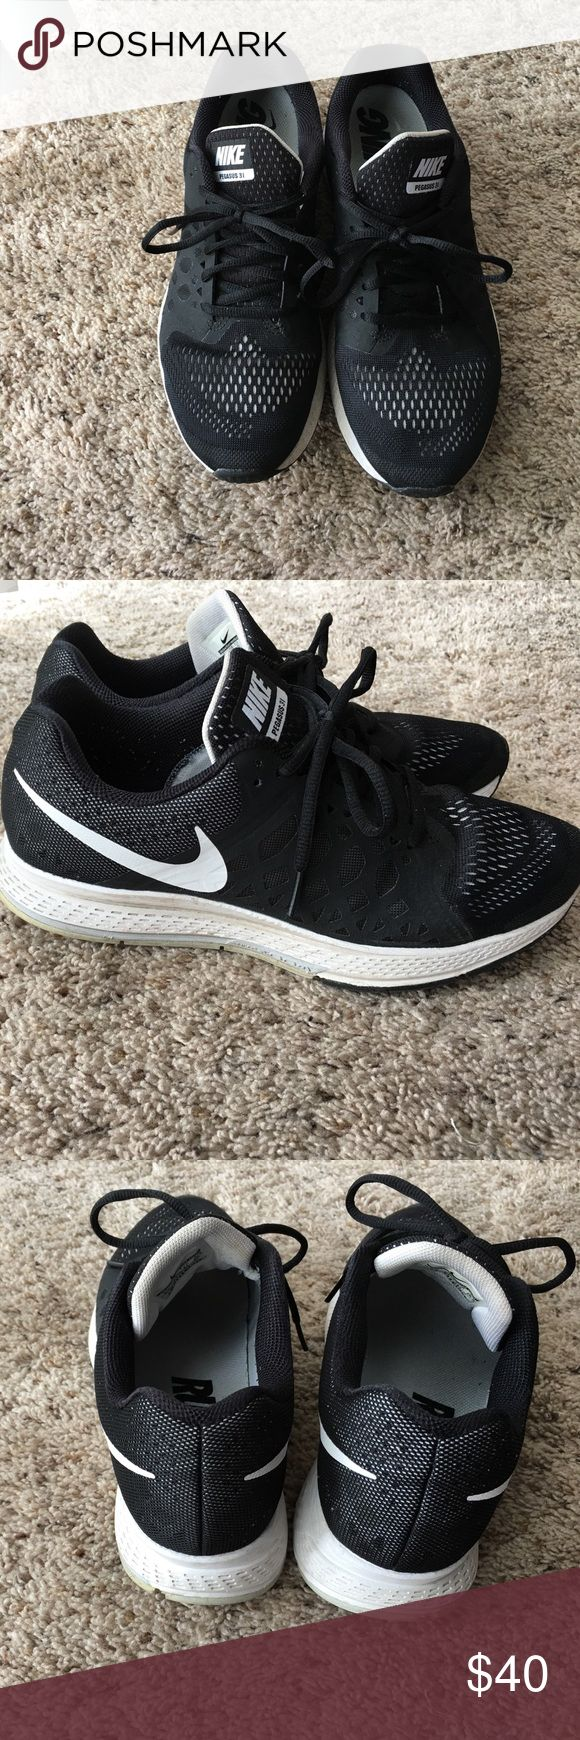 Nike pegasus 31 Nike pegasus 31 shoes. In black and white. Inner and outer soles in great condition. Outer material also in great condition. Nike Shoes Athletic Shoes